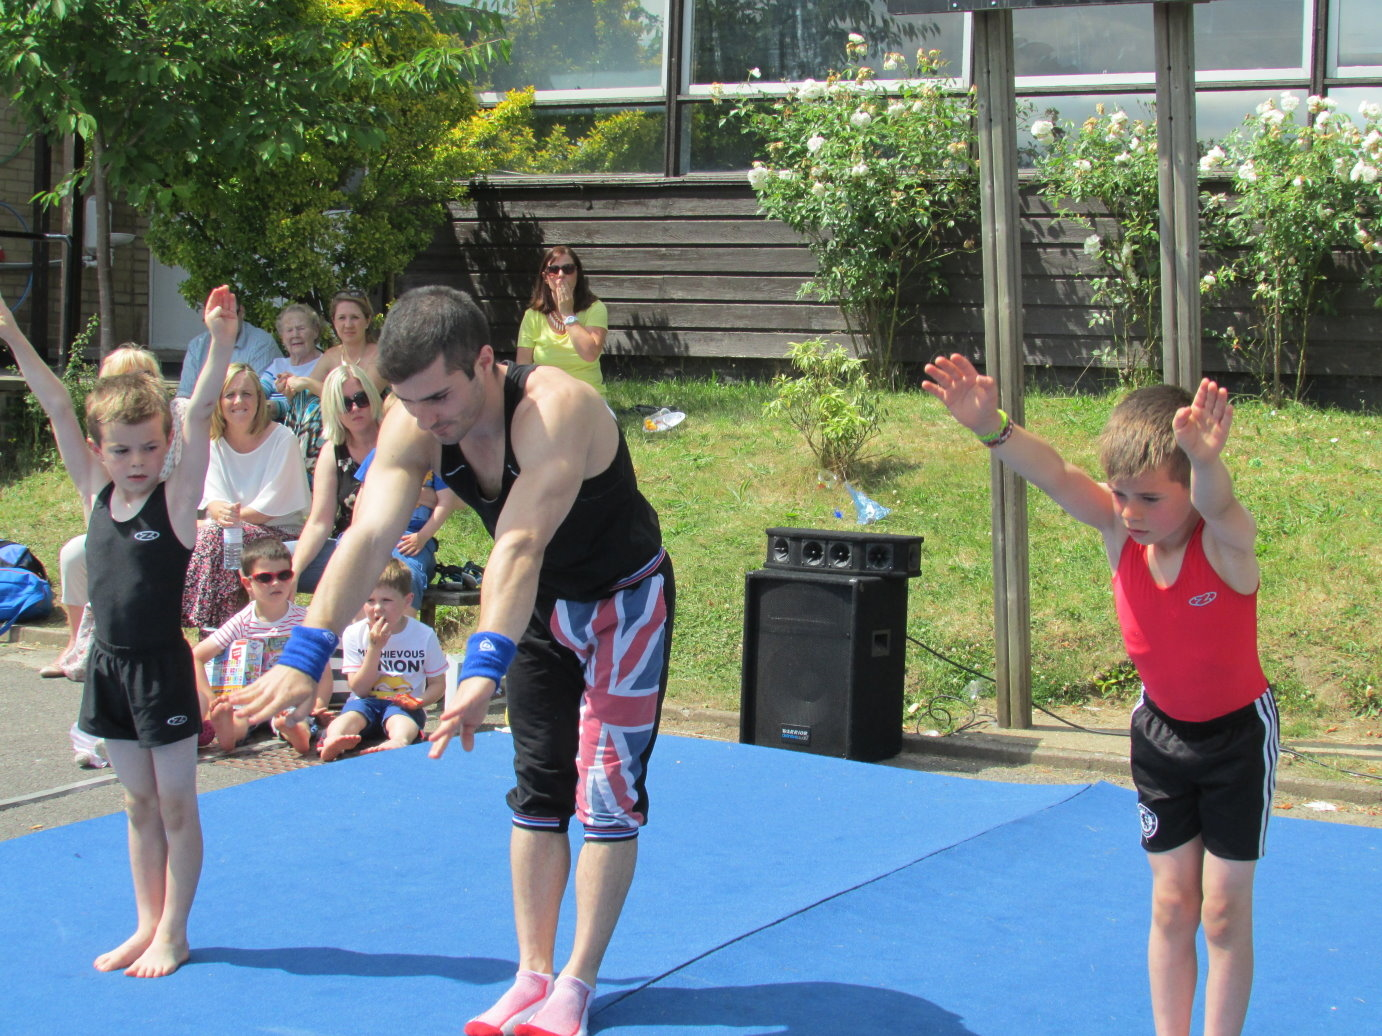 Gymnastics at Hadley Wood in London 2